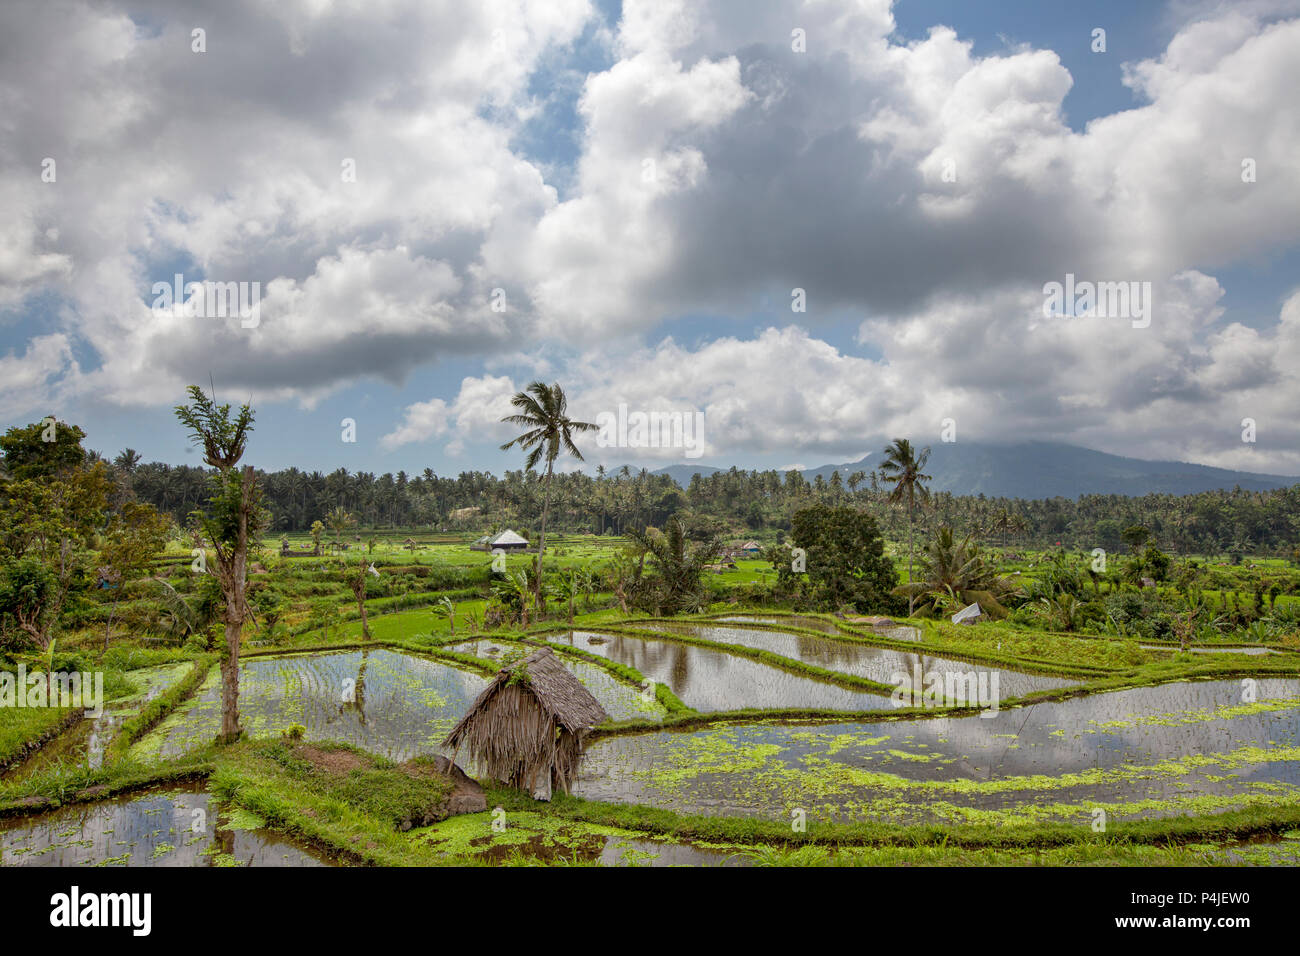 Bali Rice Terraces. The beautiful and dramatic rice fields. A truly inspirational landscape. - Stock Image